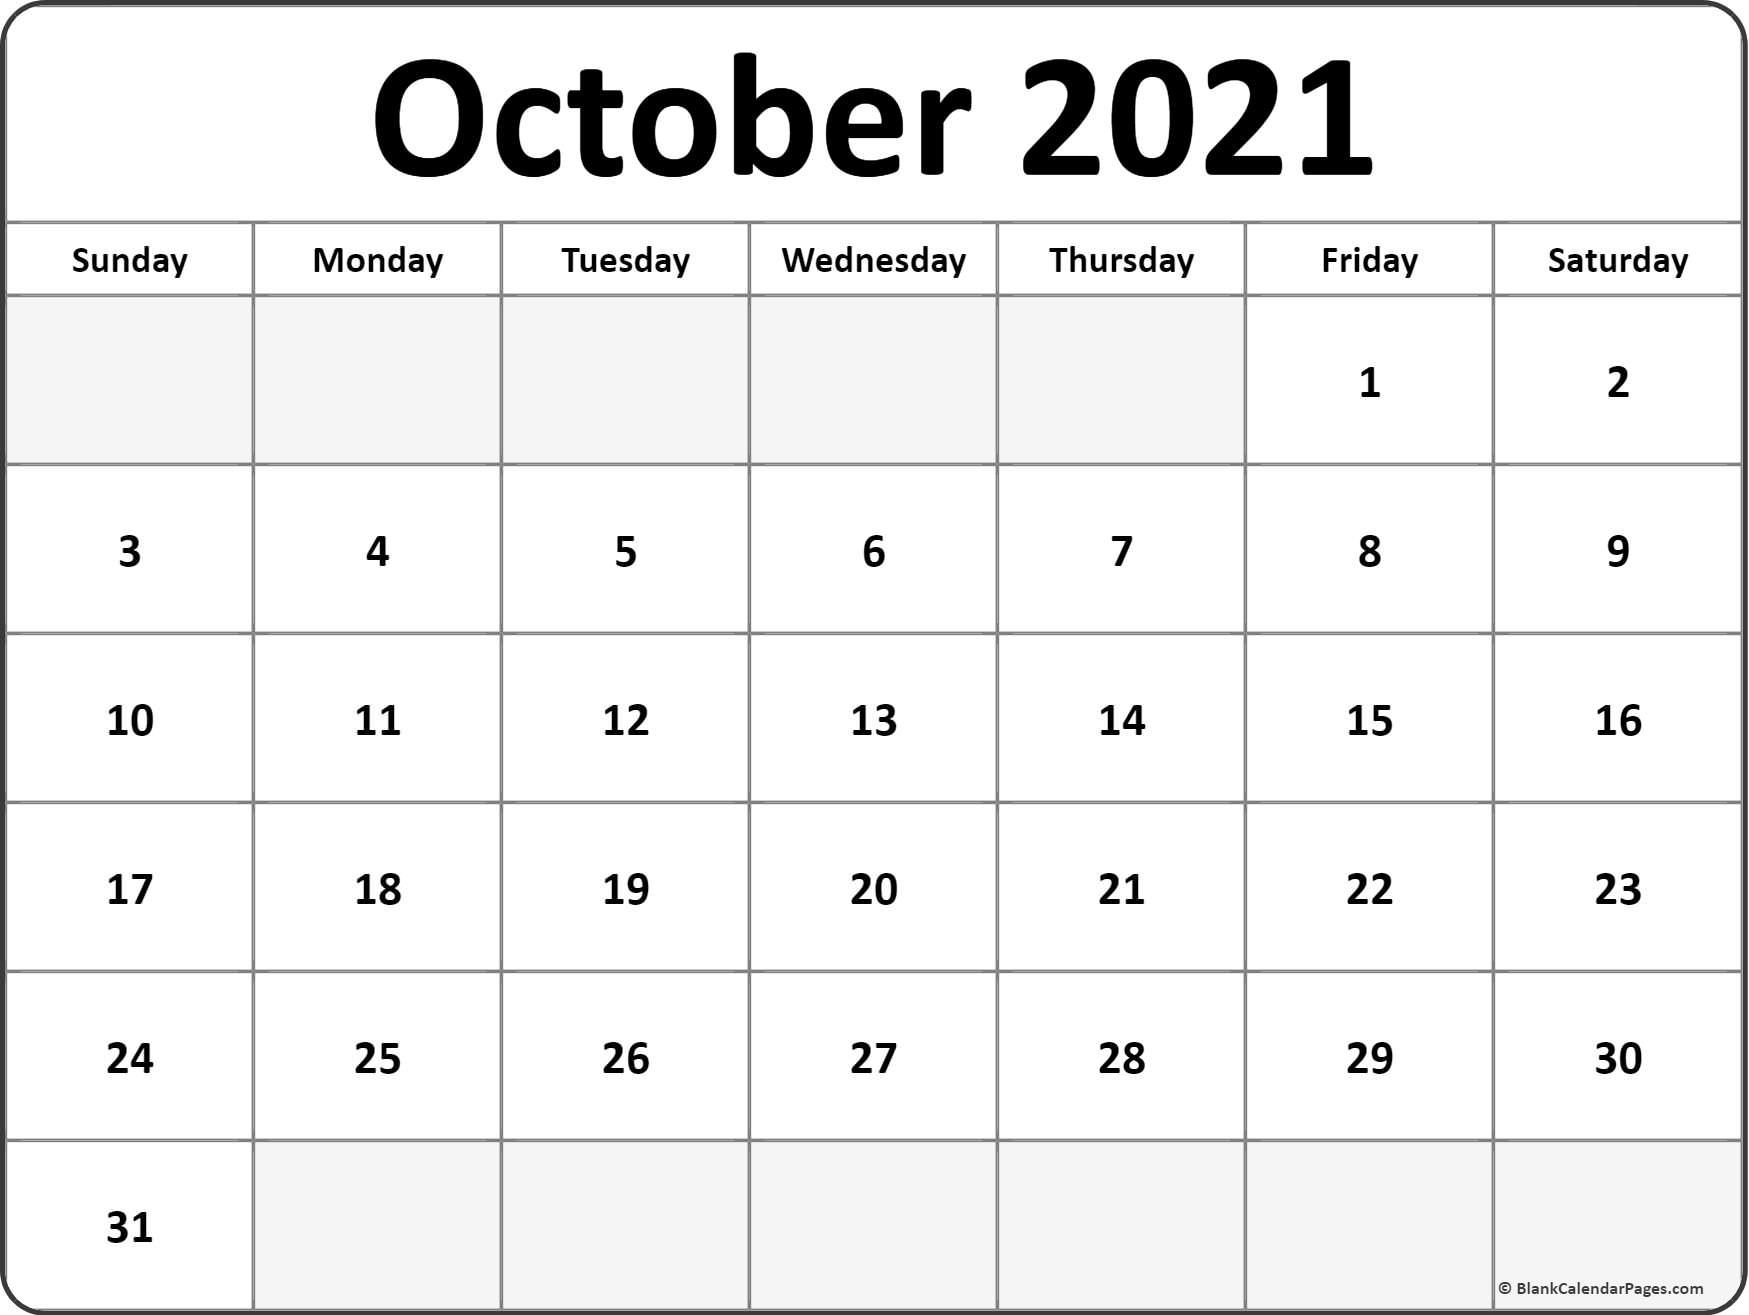 This is an image of Enterprising Printable Monthly Calendars for 2020